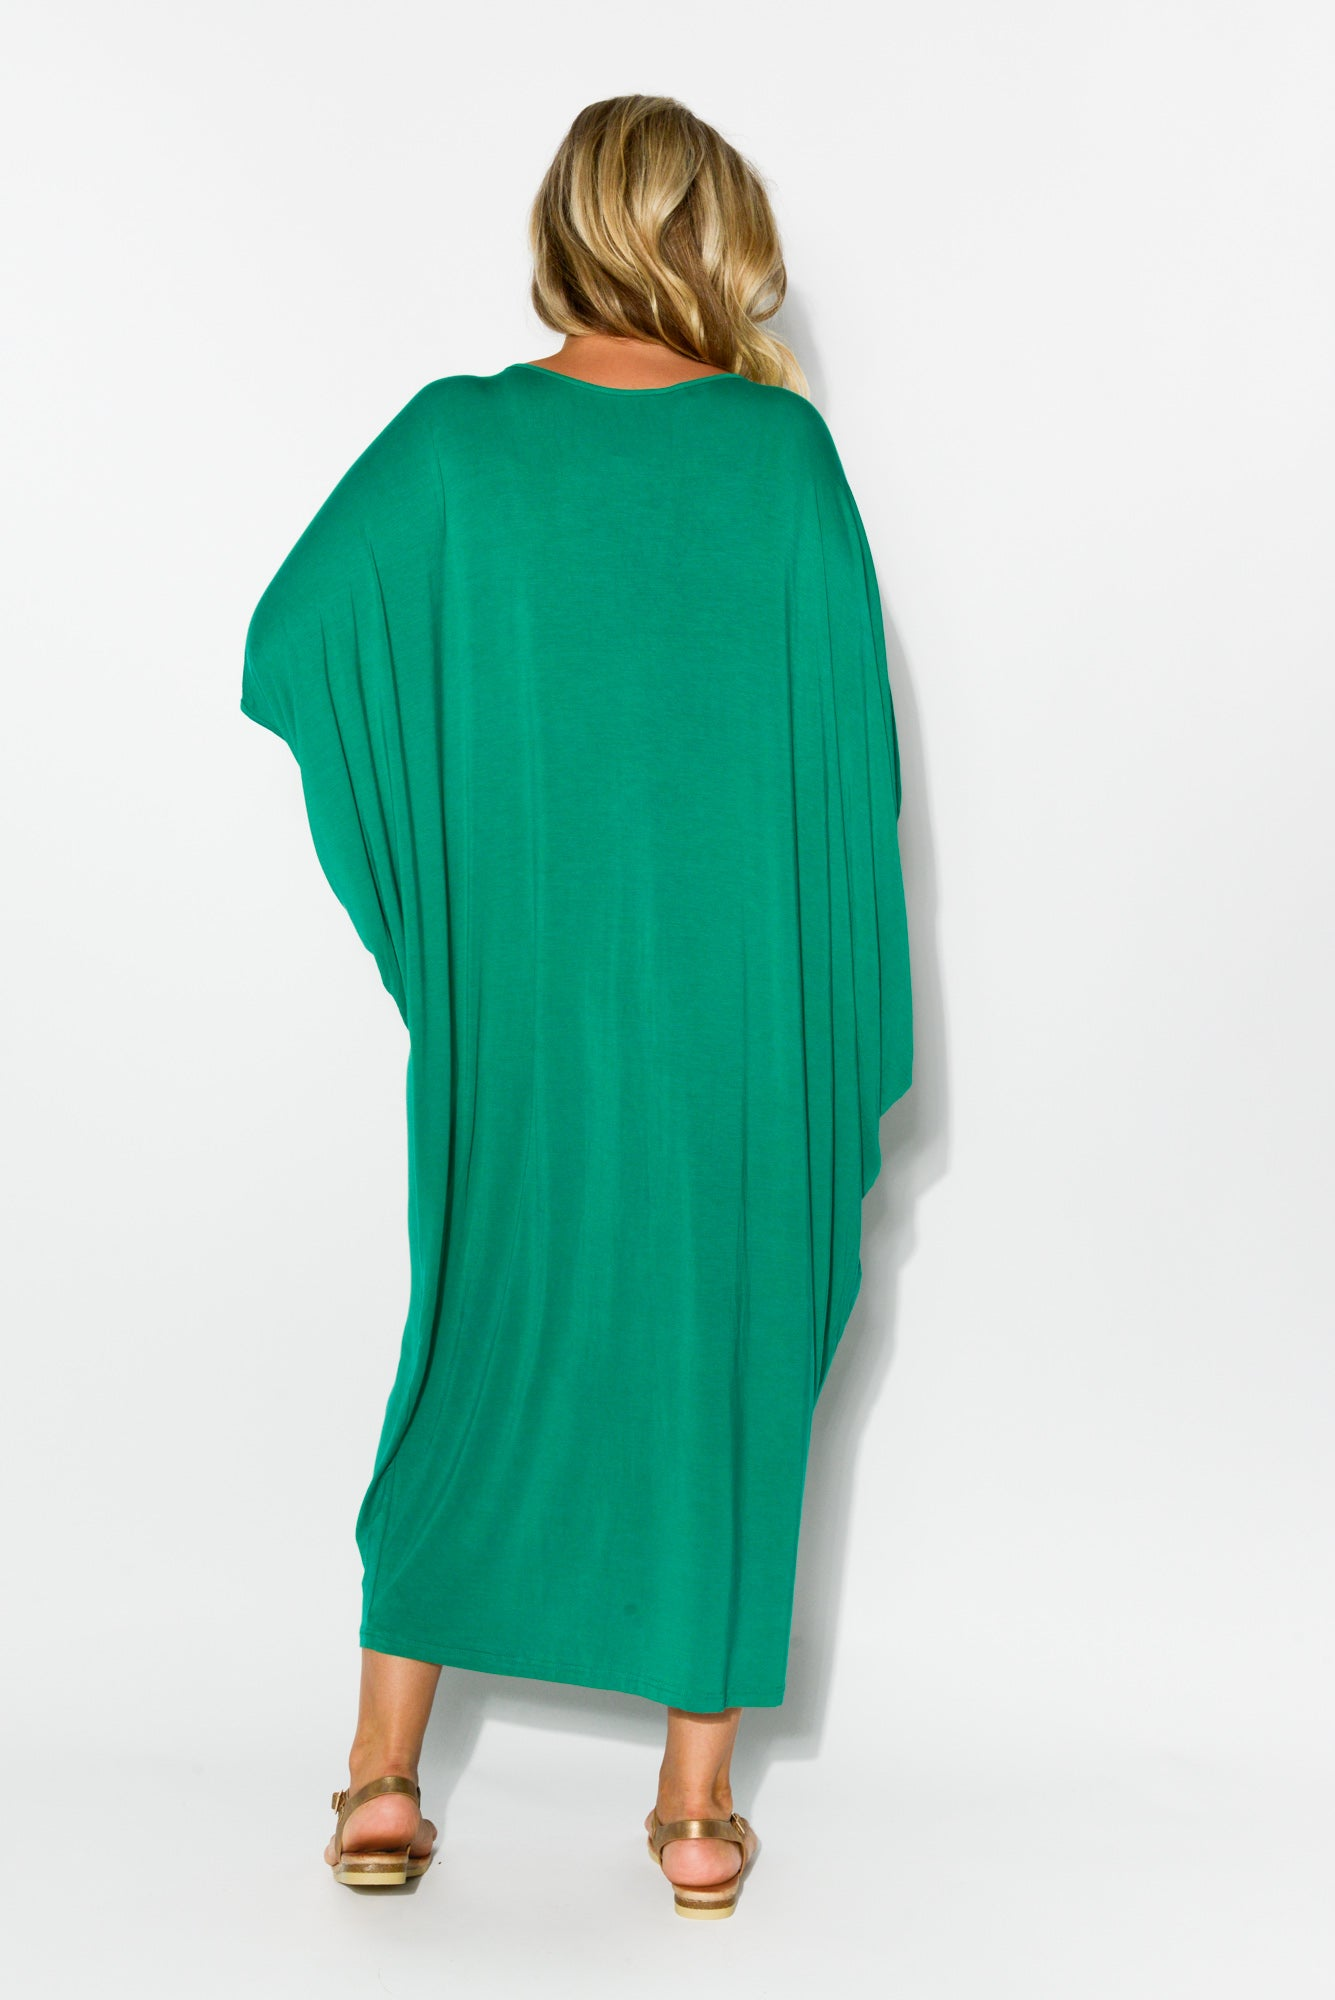 Freya Green Bamboo Maxi Batwing Dress - Blue Bungalow